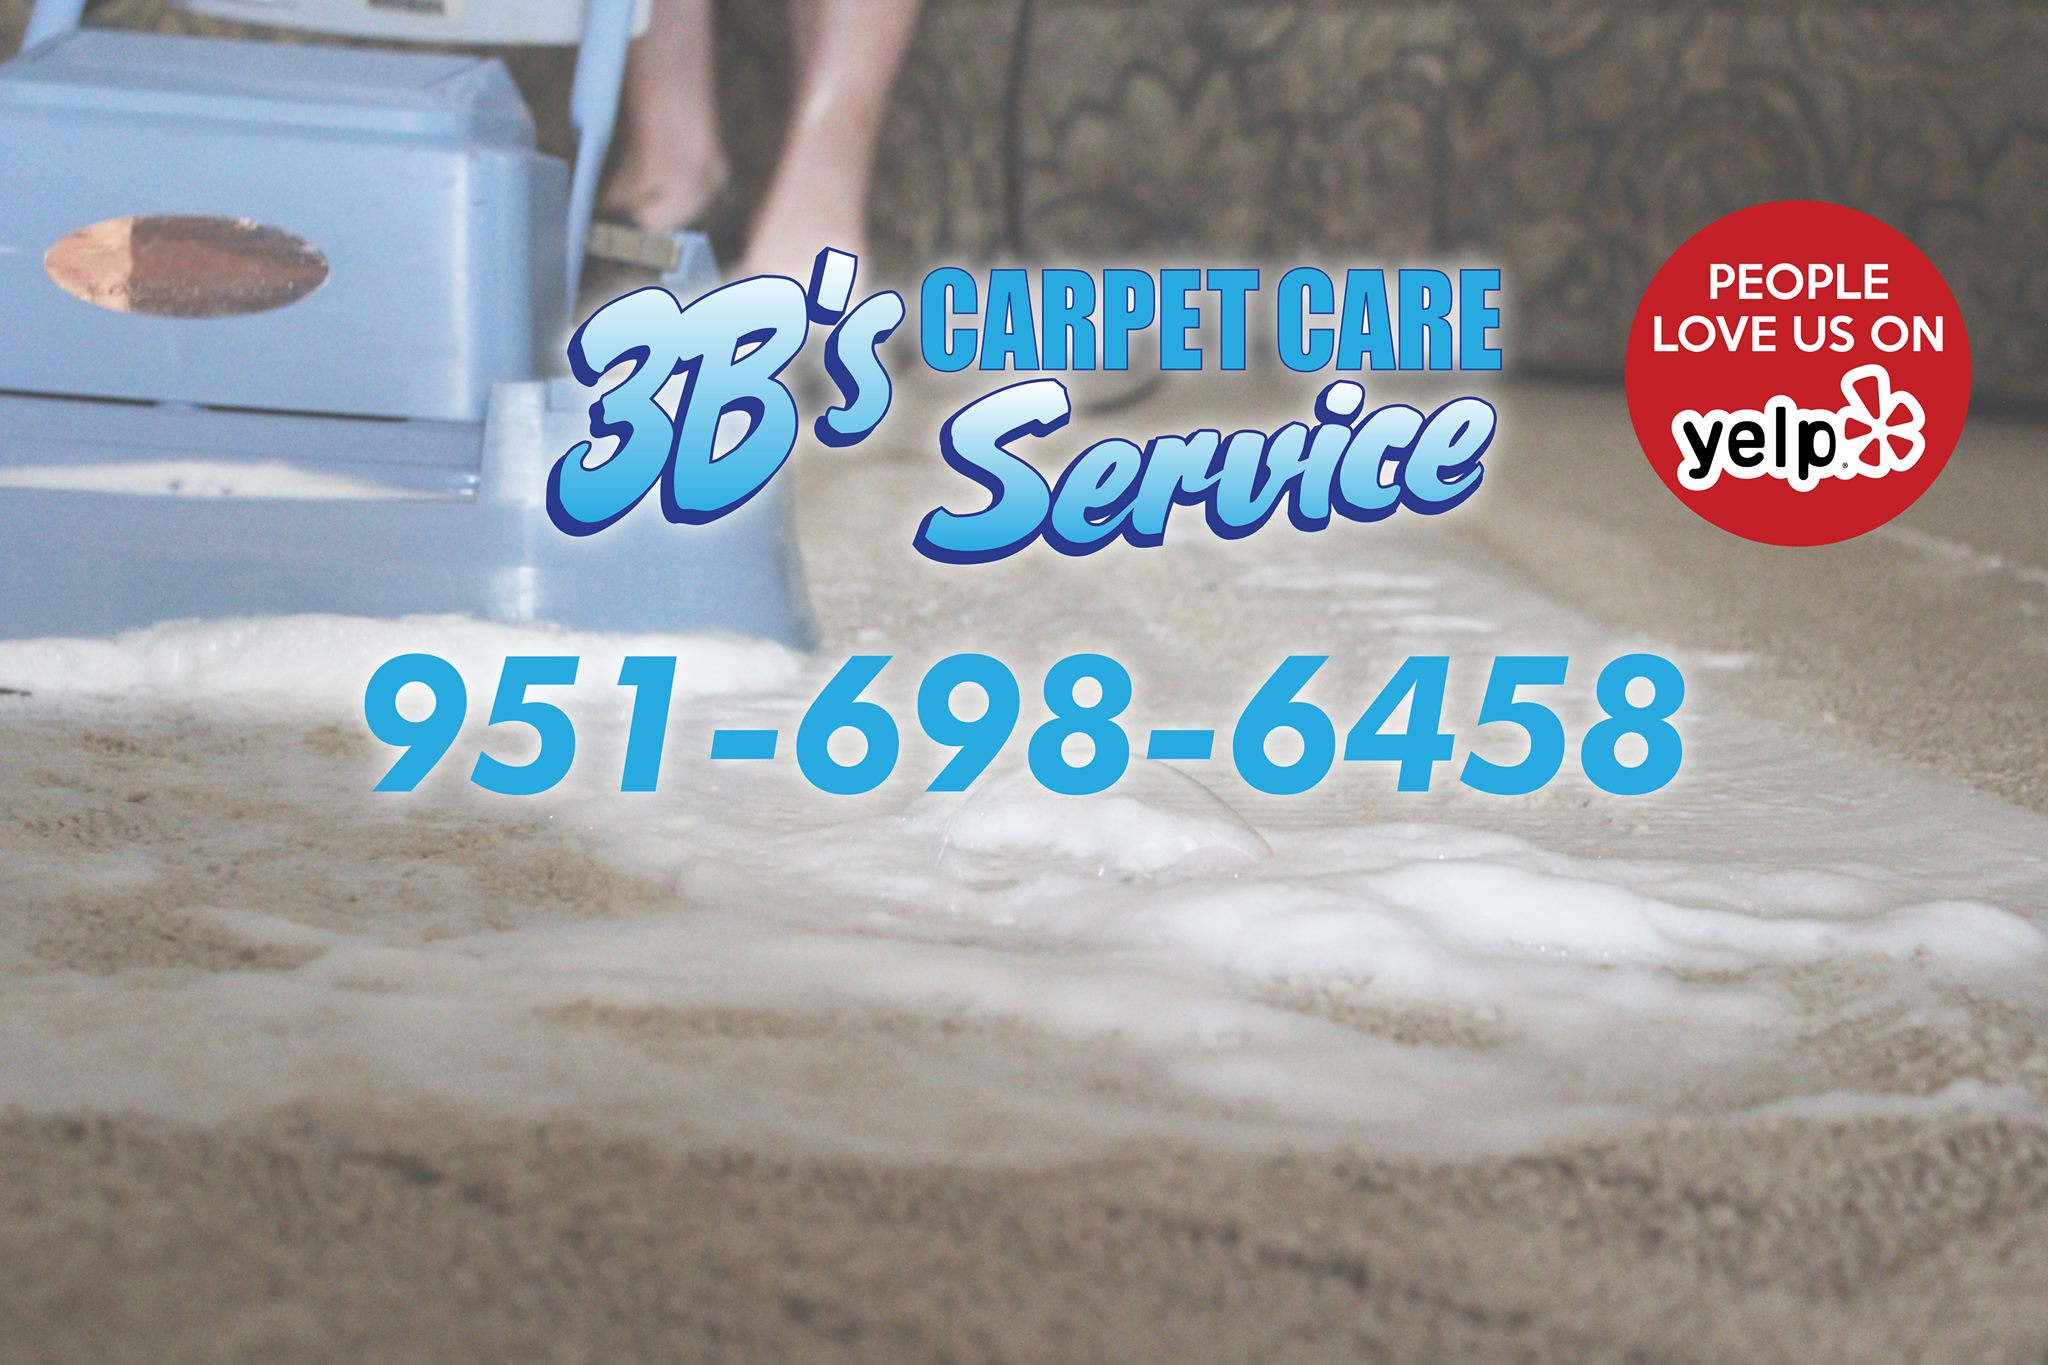 3B's Carpet Cleaning and Floor Care Service has had many customers tell us they have not had their carpets cleaned in 3 years or more because they have ...